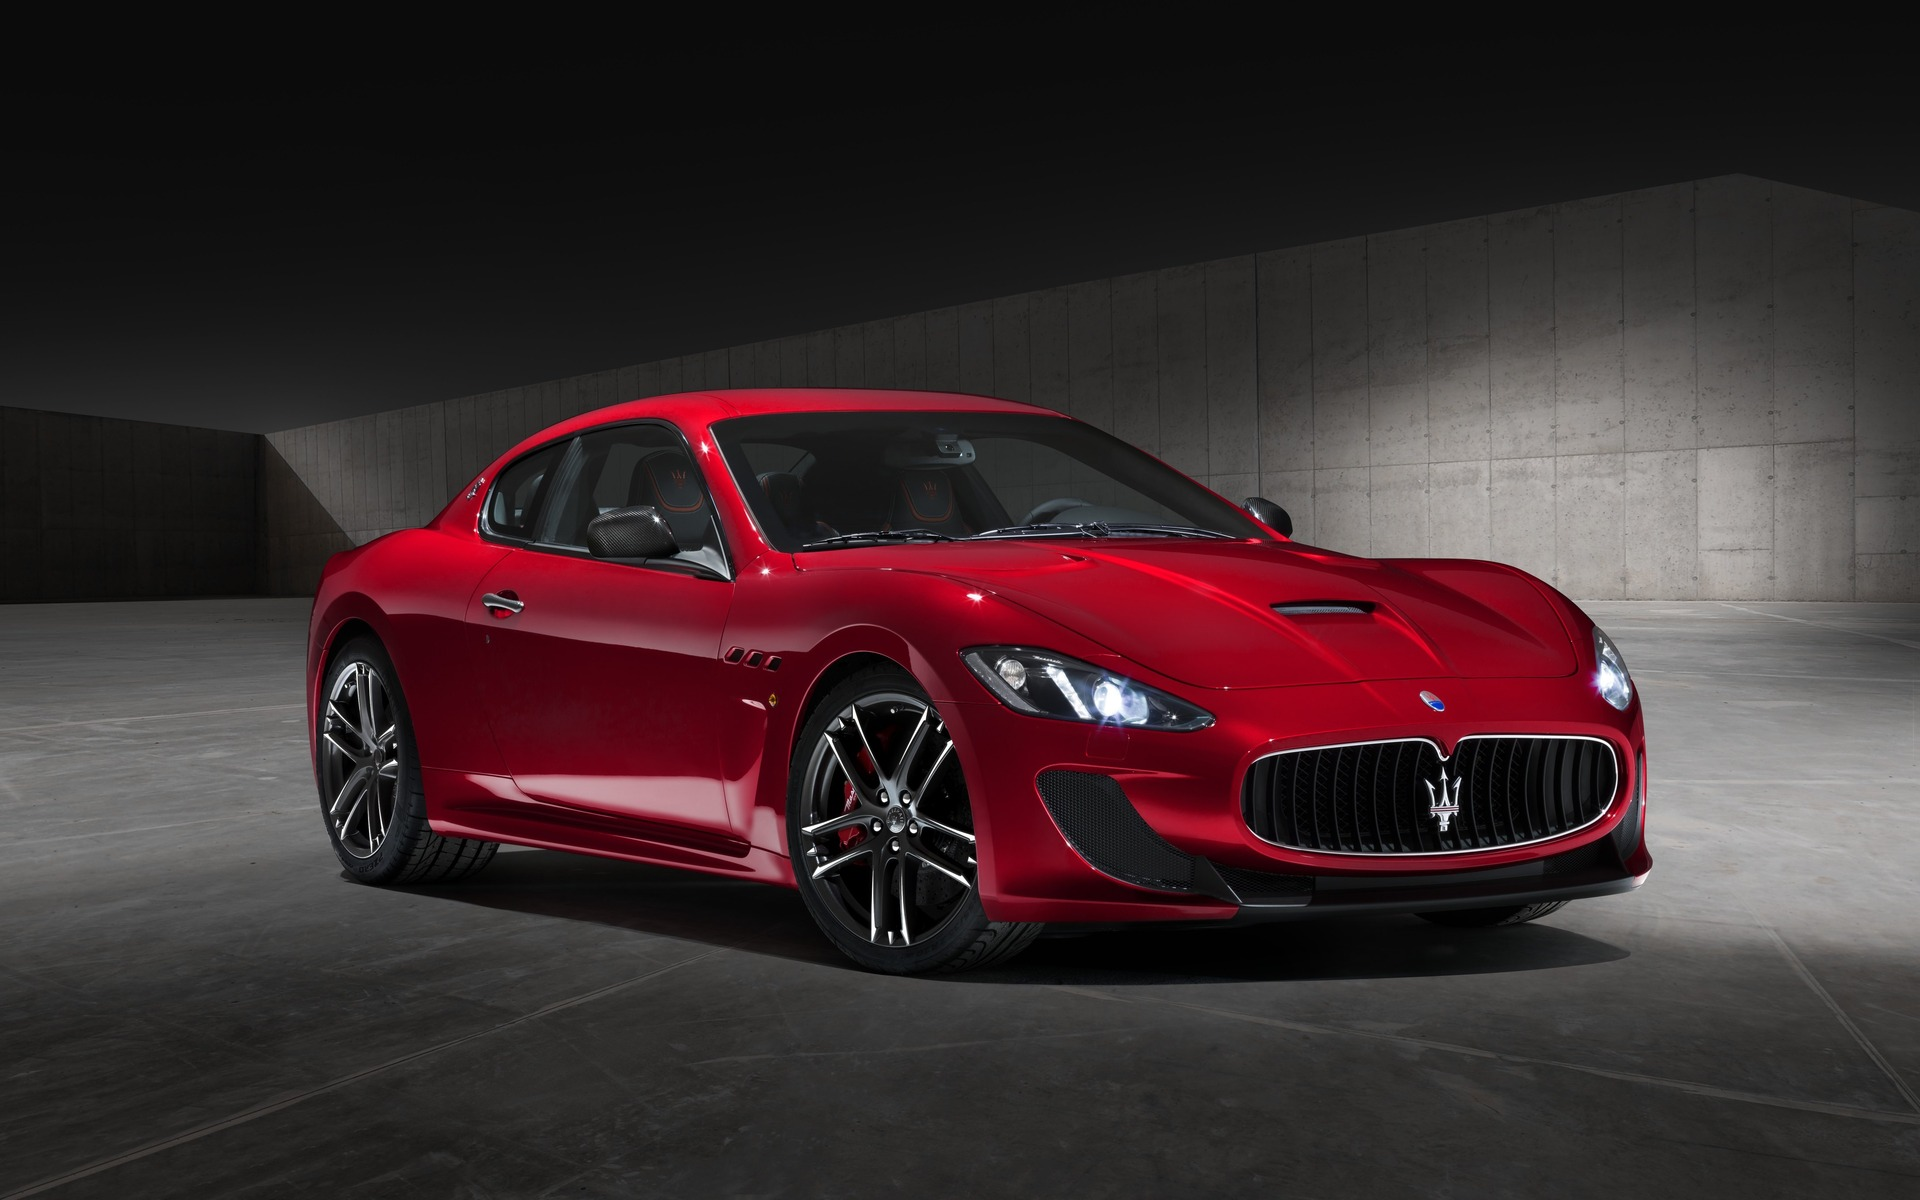 2017 maserati granturismo - news, reviews, picture galleries and